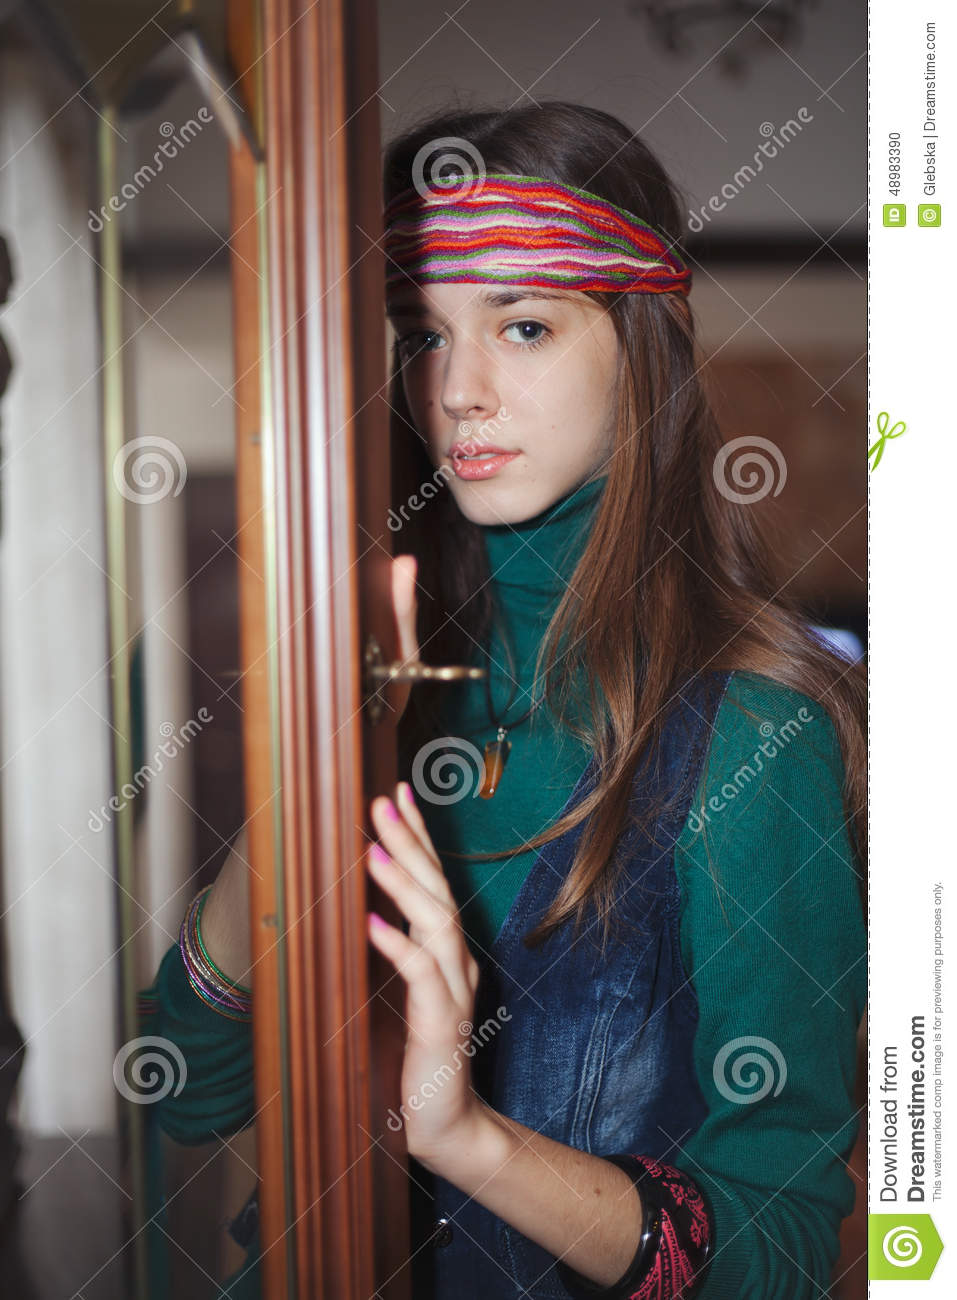 Beautiful Young Teenage Girl Hippie Looking At The Camera -7818